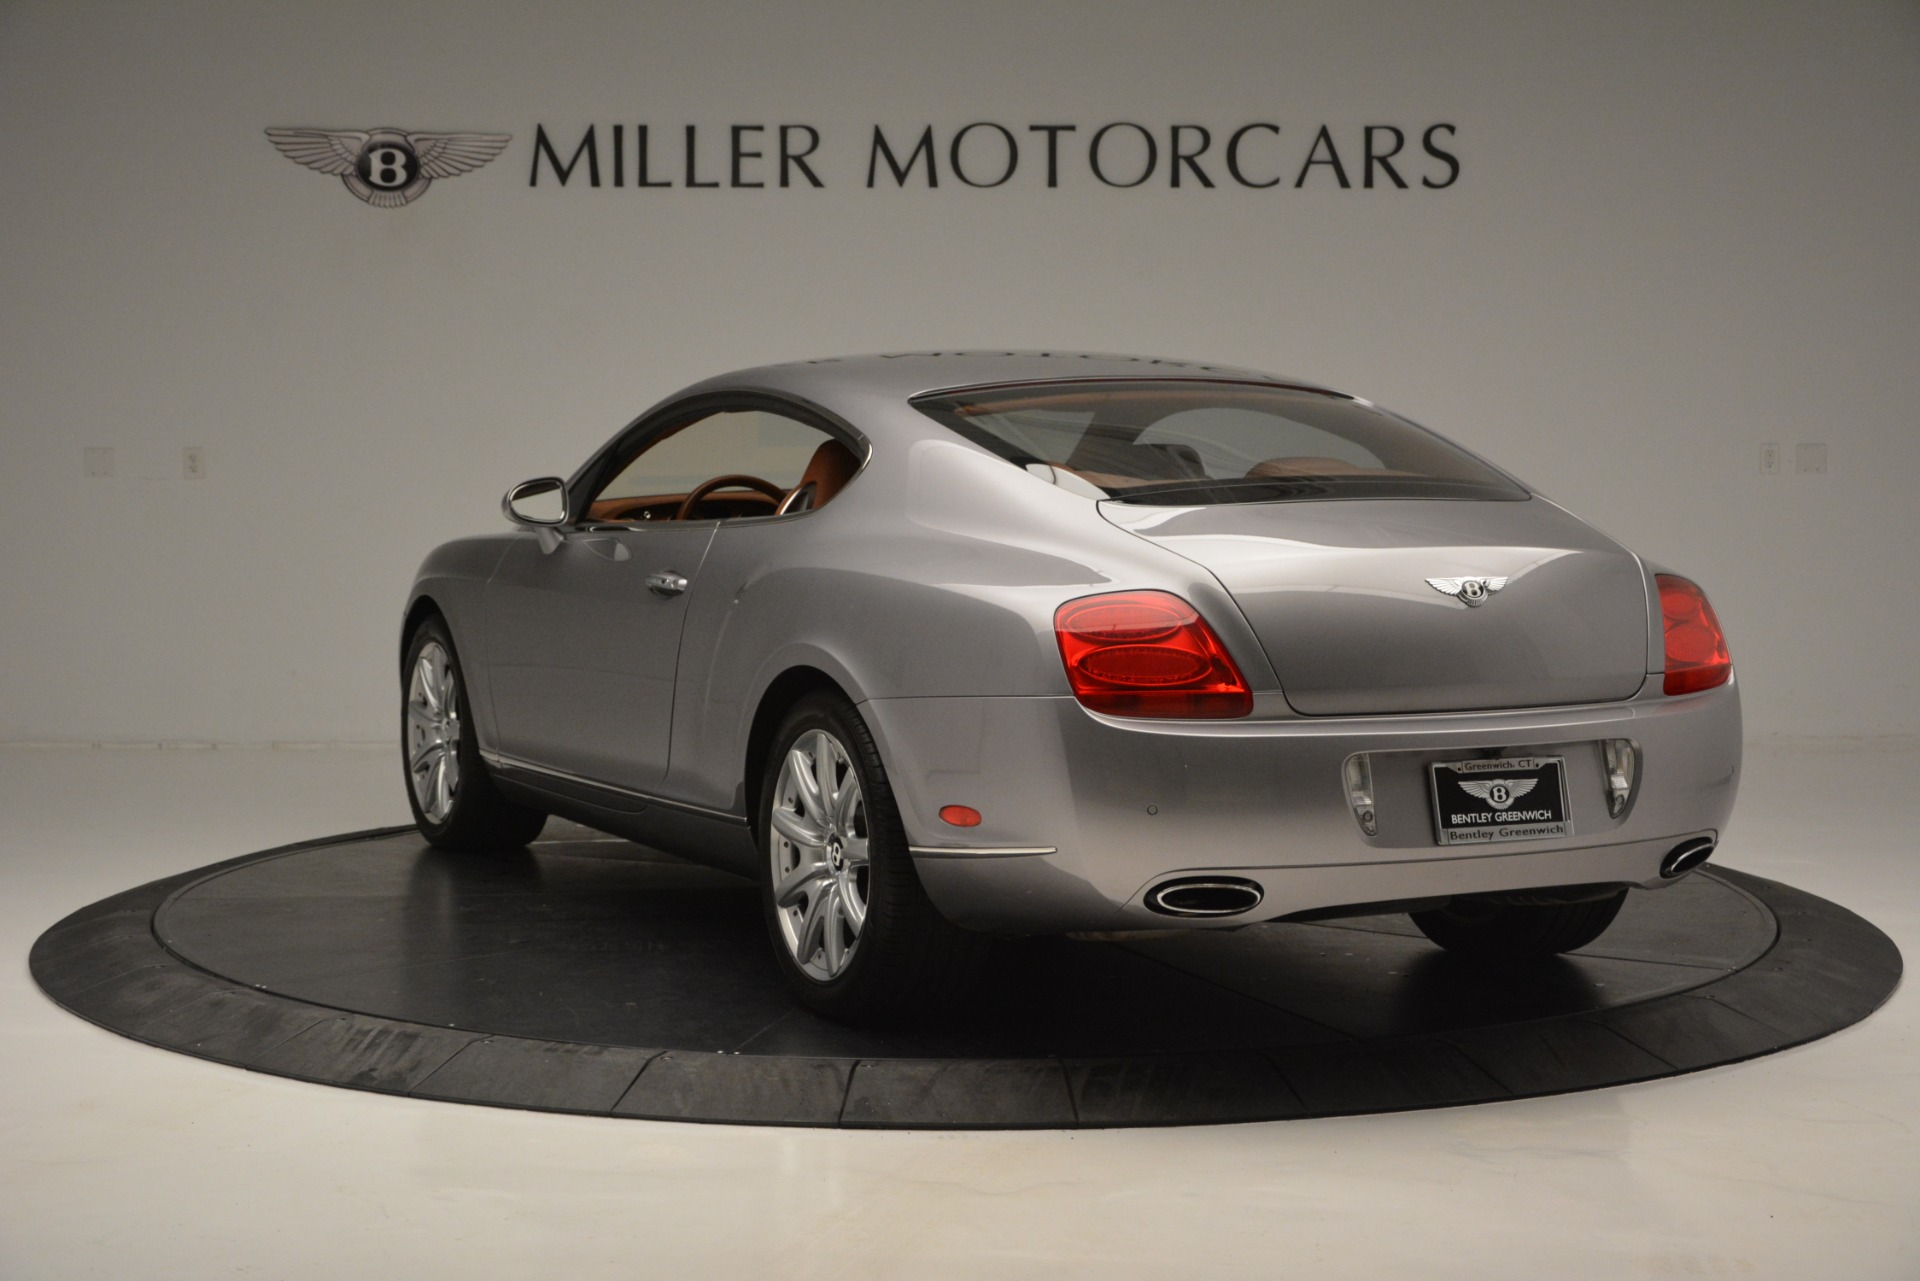 Used 2005 Bentley Continental GT GT Turbo For Sale In Westport, CT 2726_p5